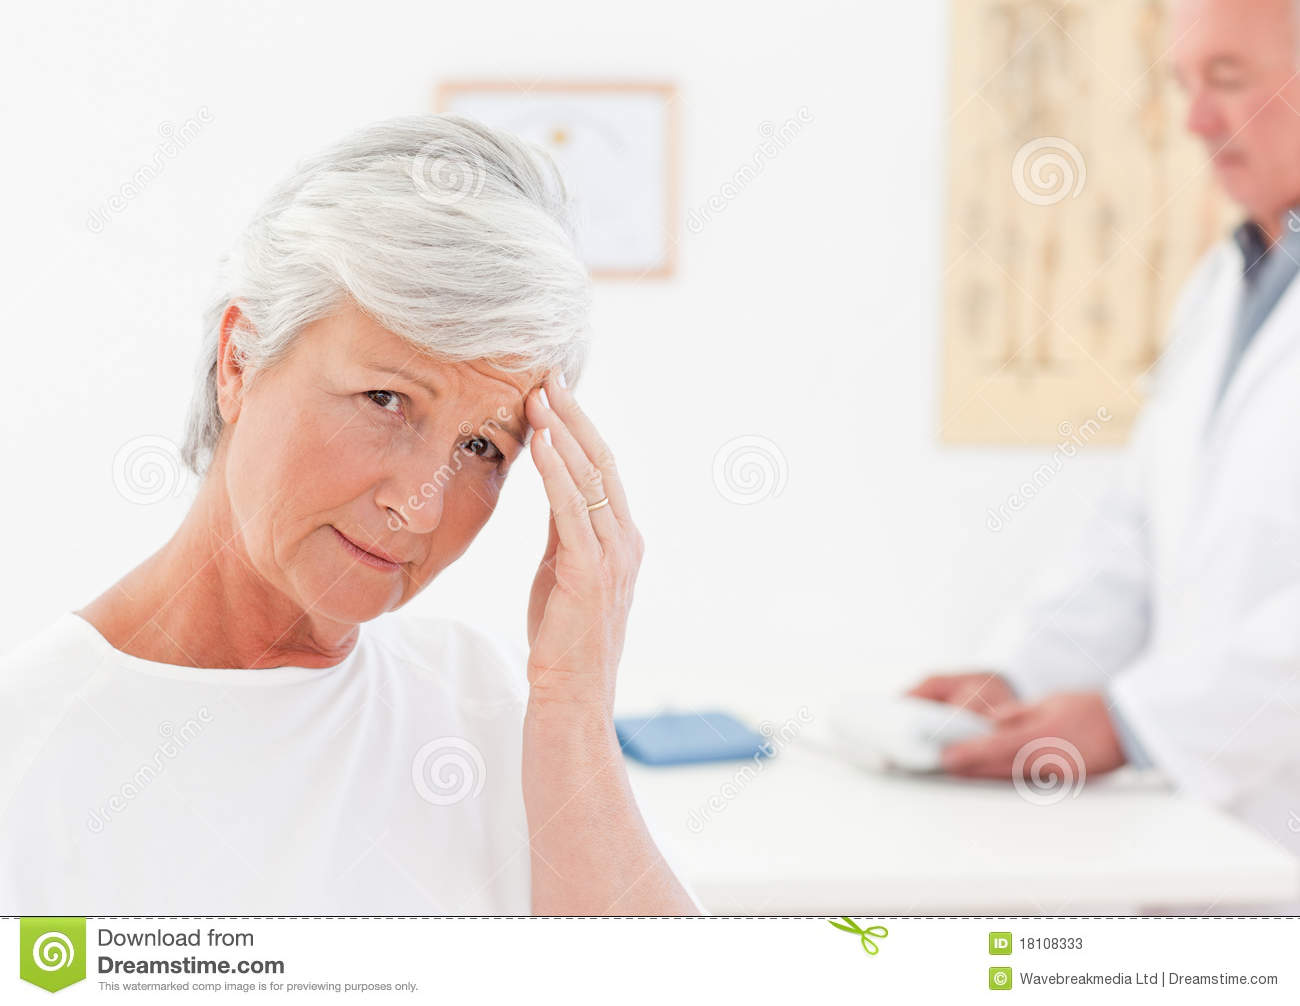 Sick Patient Pic : Sick Patient With Her Doctor Stock Photos - Image: 18108333